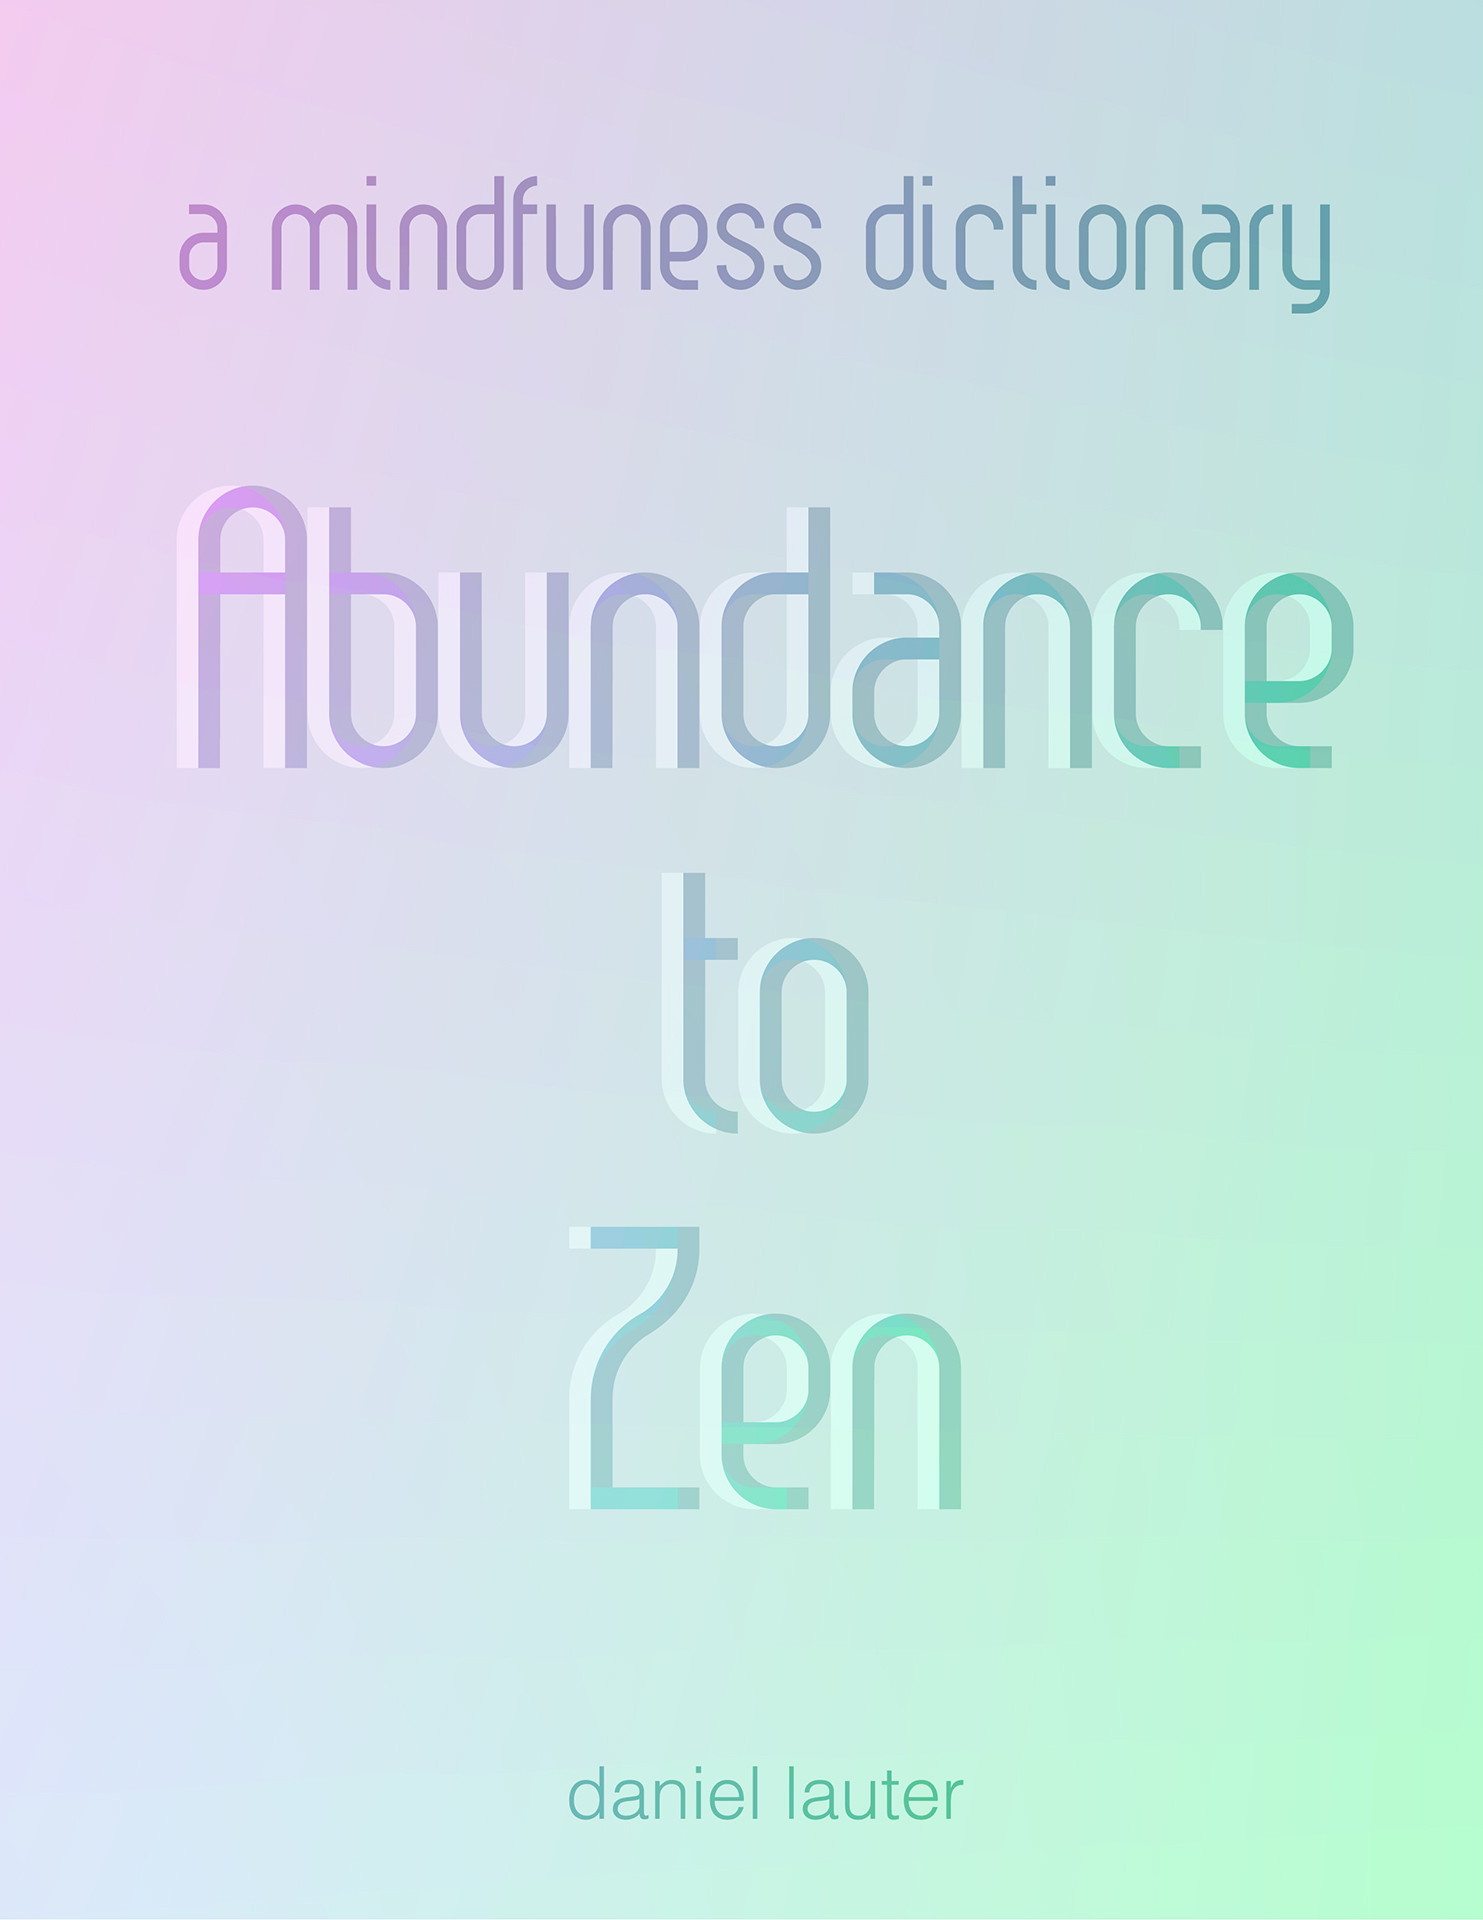 A Mindfulness Dictionary